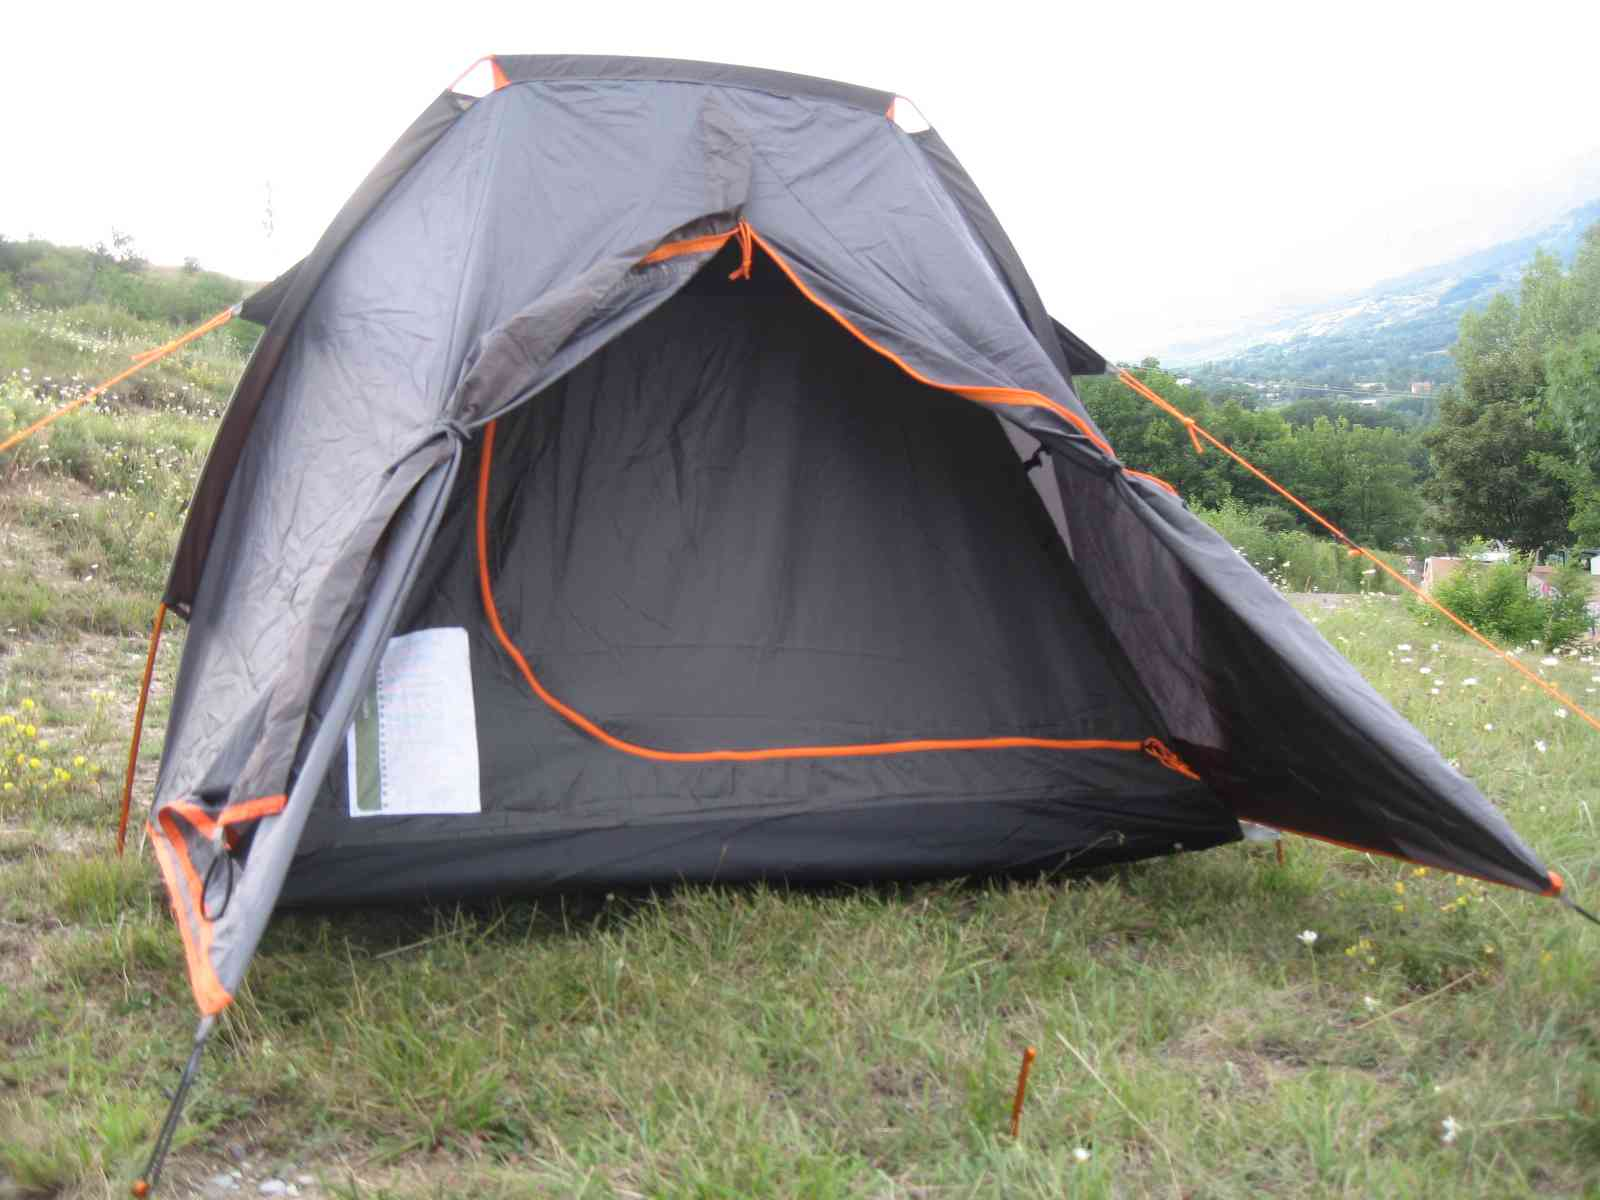 Dmfly tente quechua t2 ultralight pro for Tente deux chambres